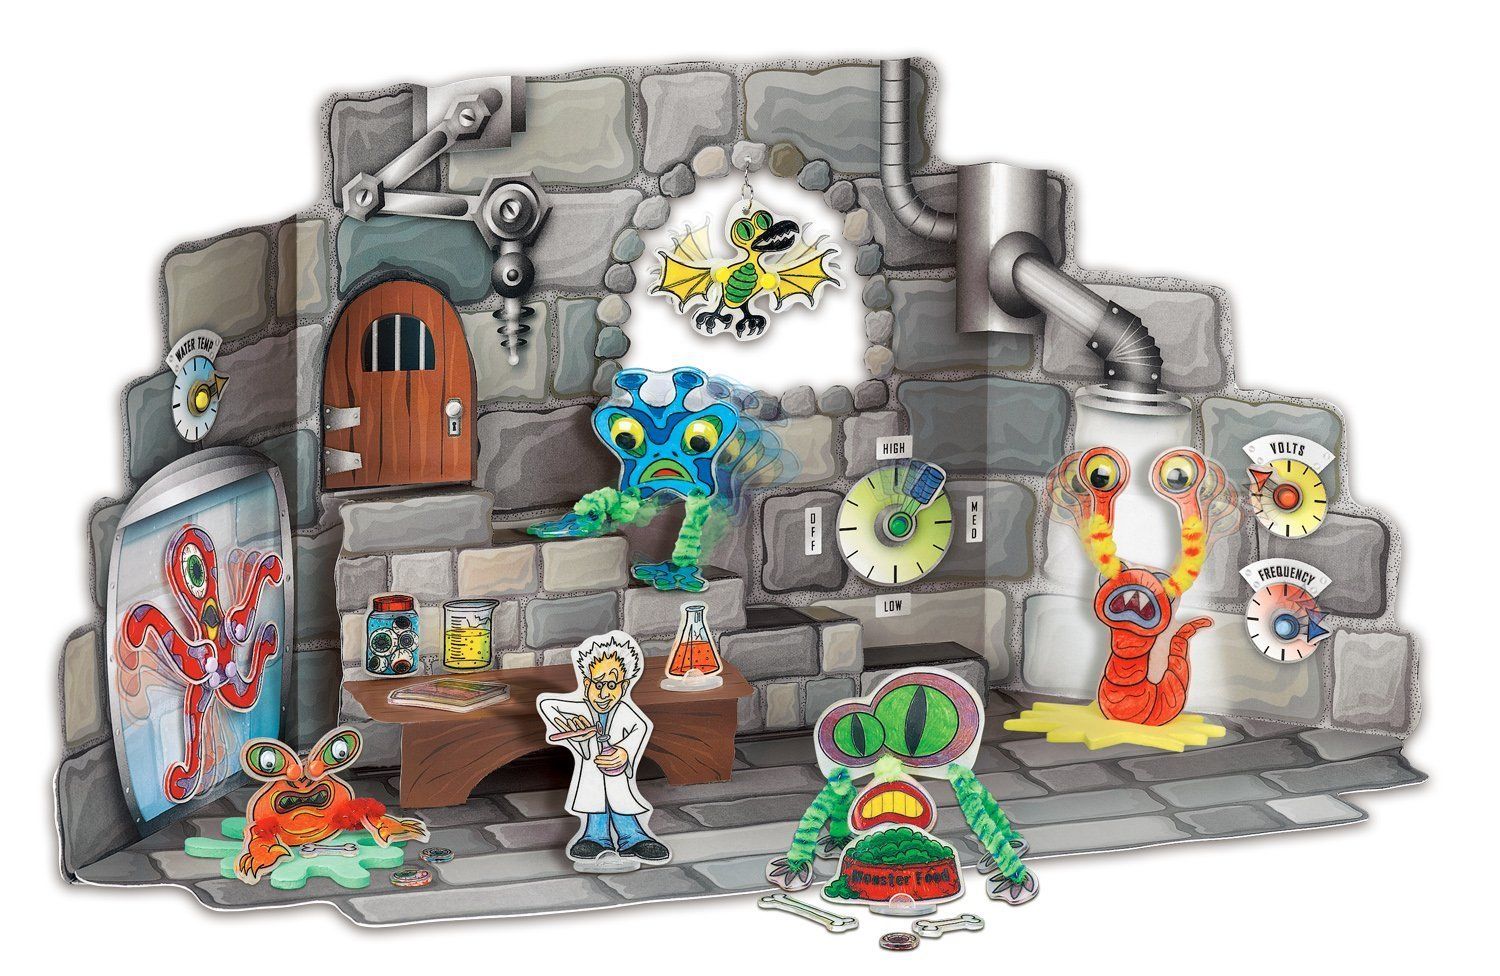 Monster laboratory completed example of colored and built assembled set